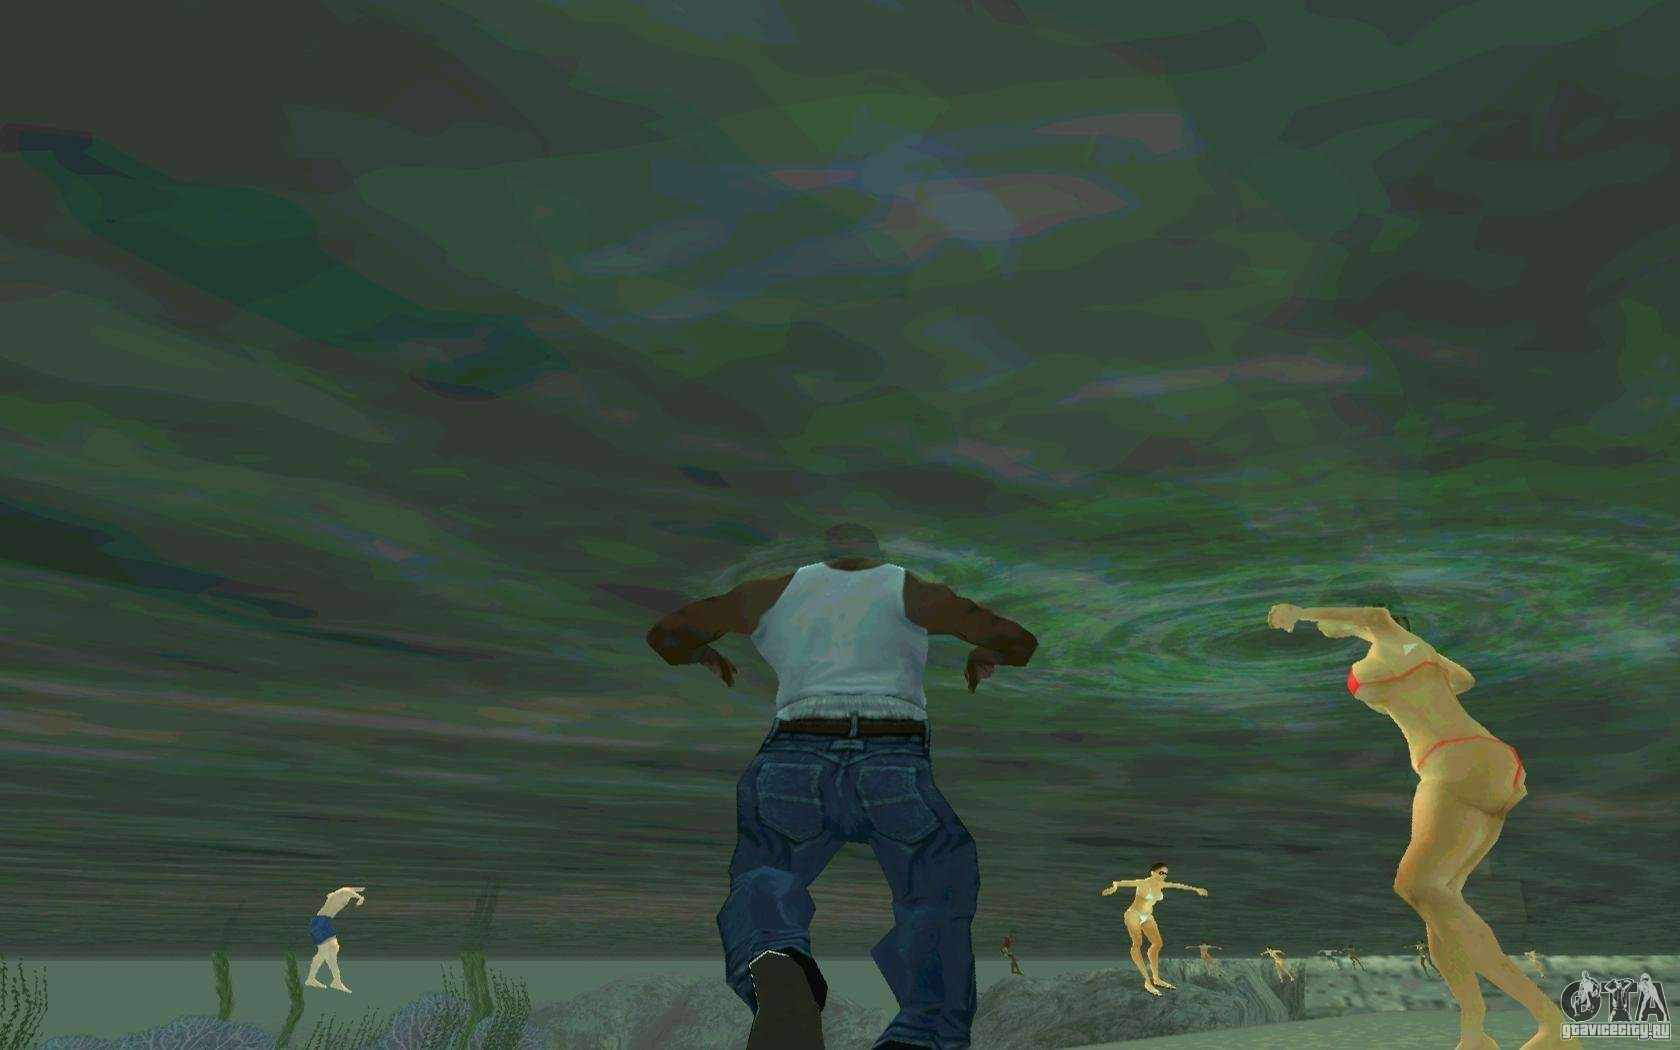 3 Ways to Swim Underwater in GTA San Andreas - wikiHow